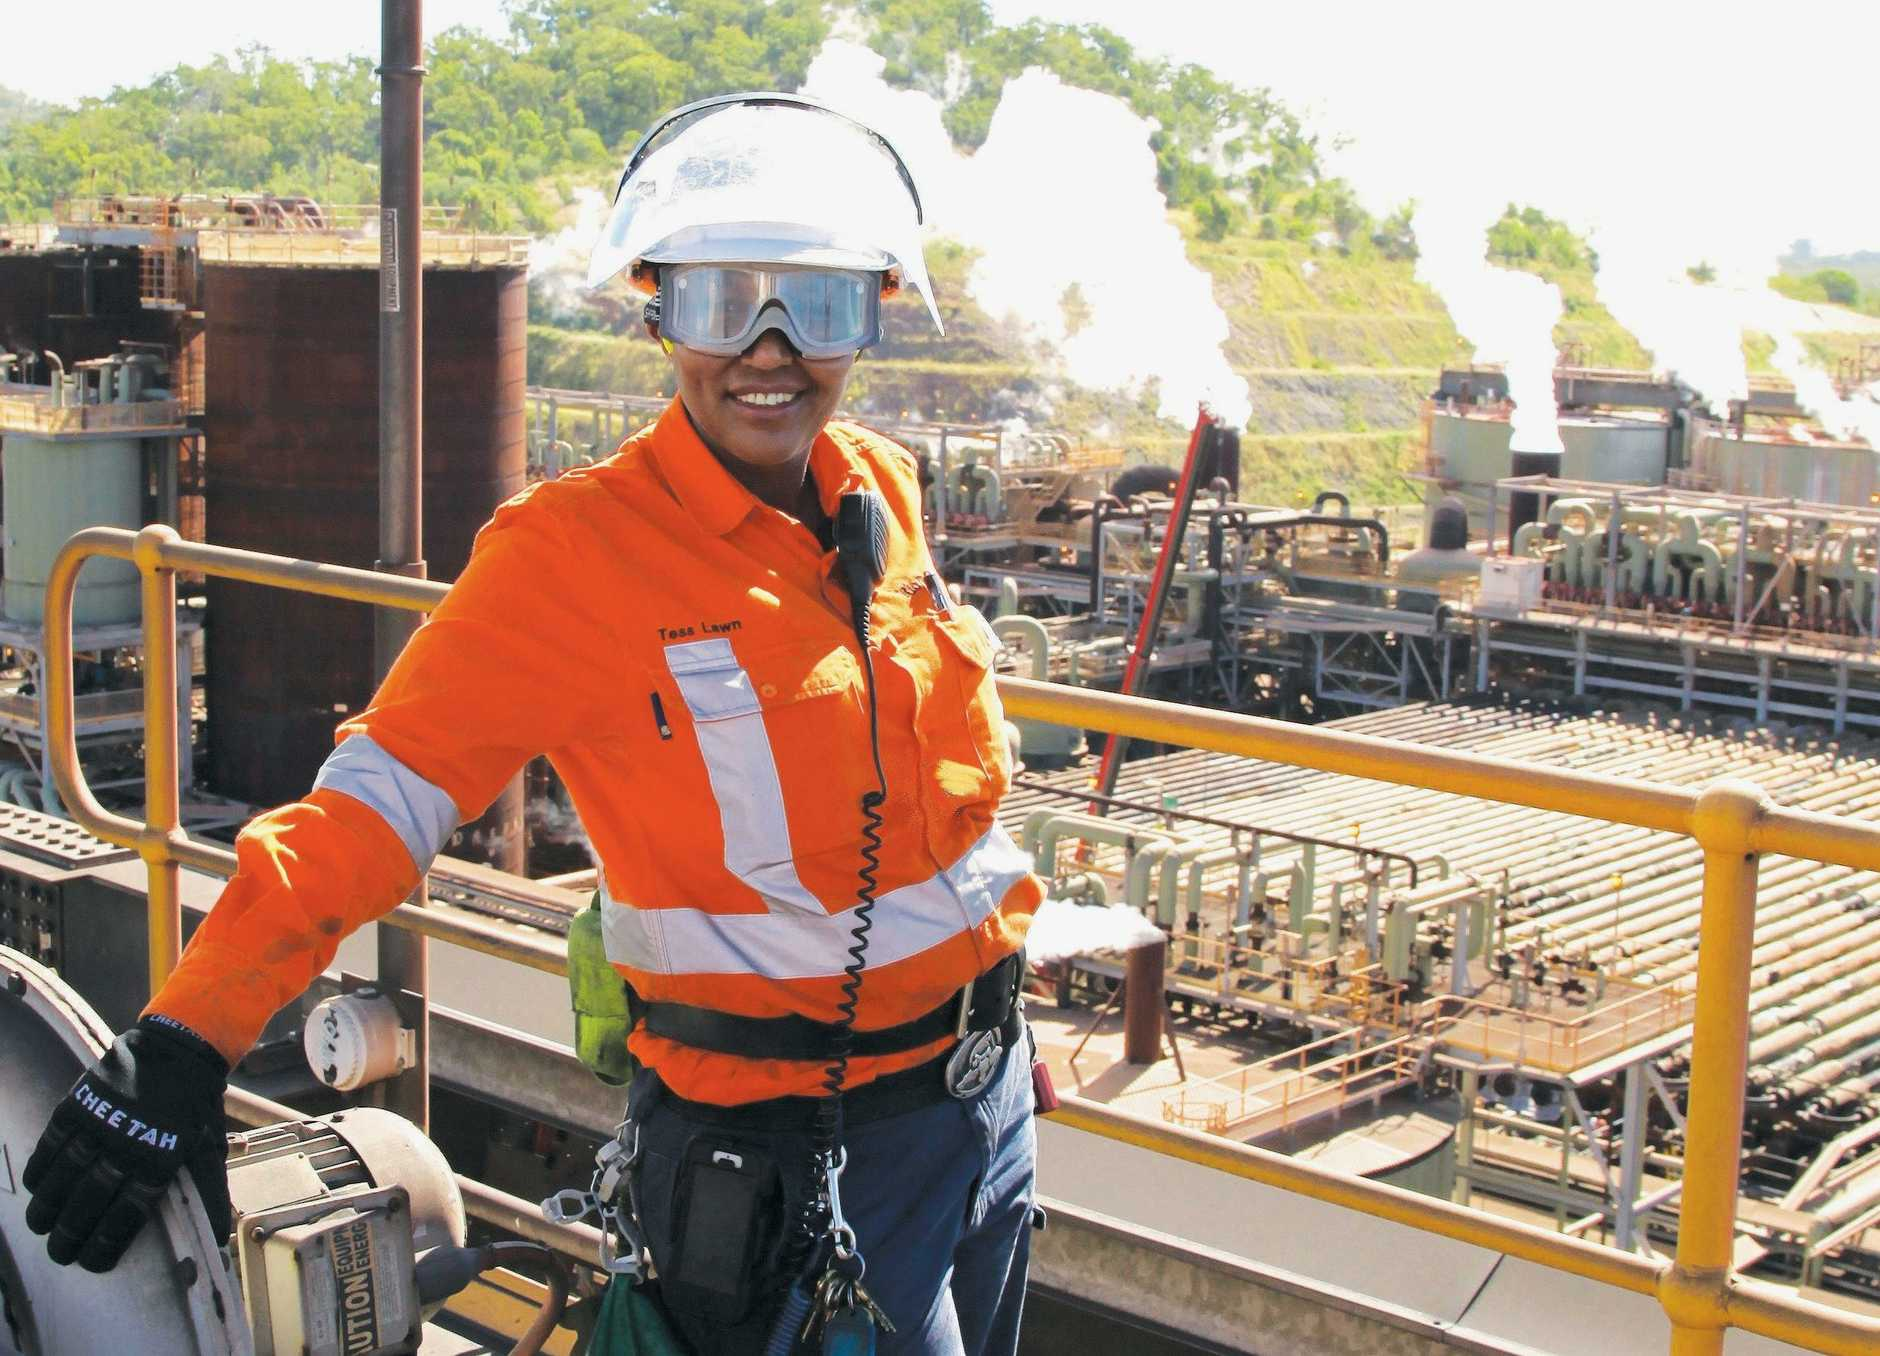 JOBS AVAILABLE: Rio Tinto employee Tess Lawn at the Yarwun Refinery is ready to welcome the next intake of process technician trainees.